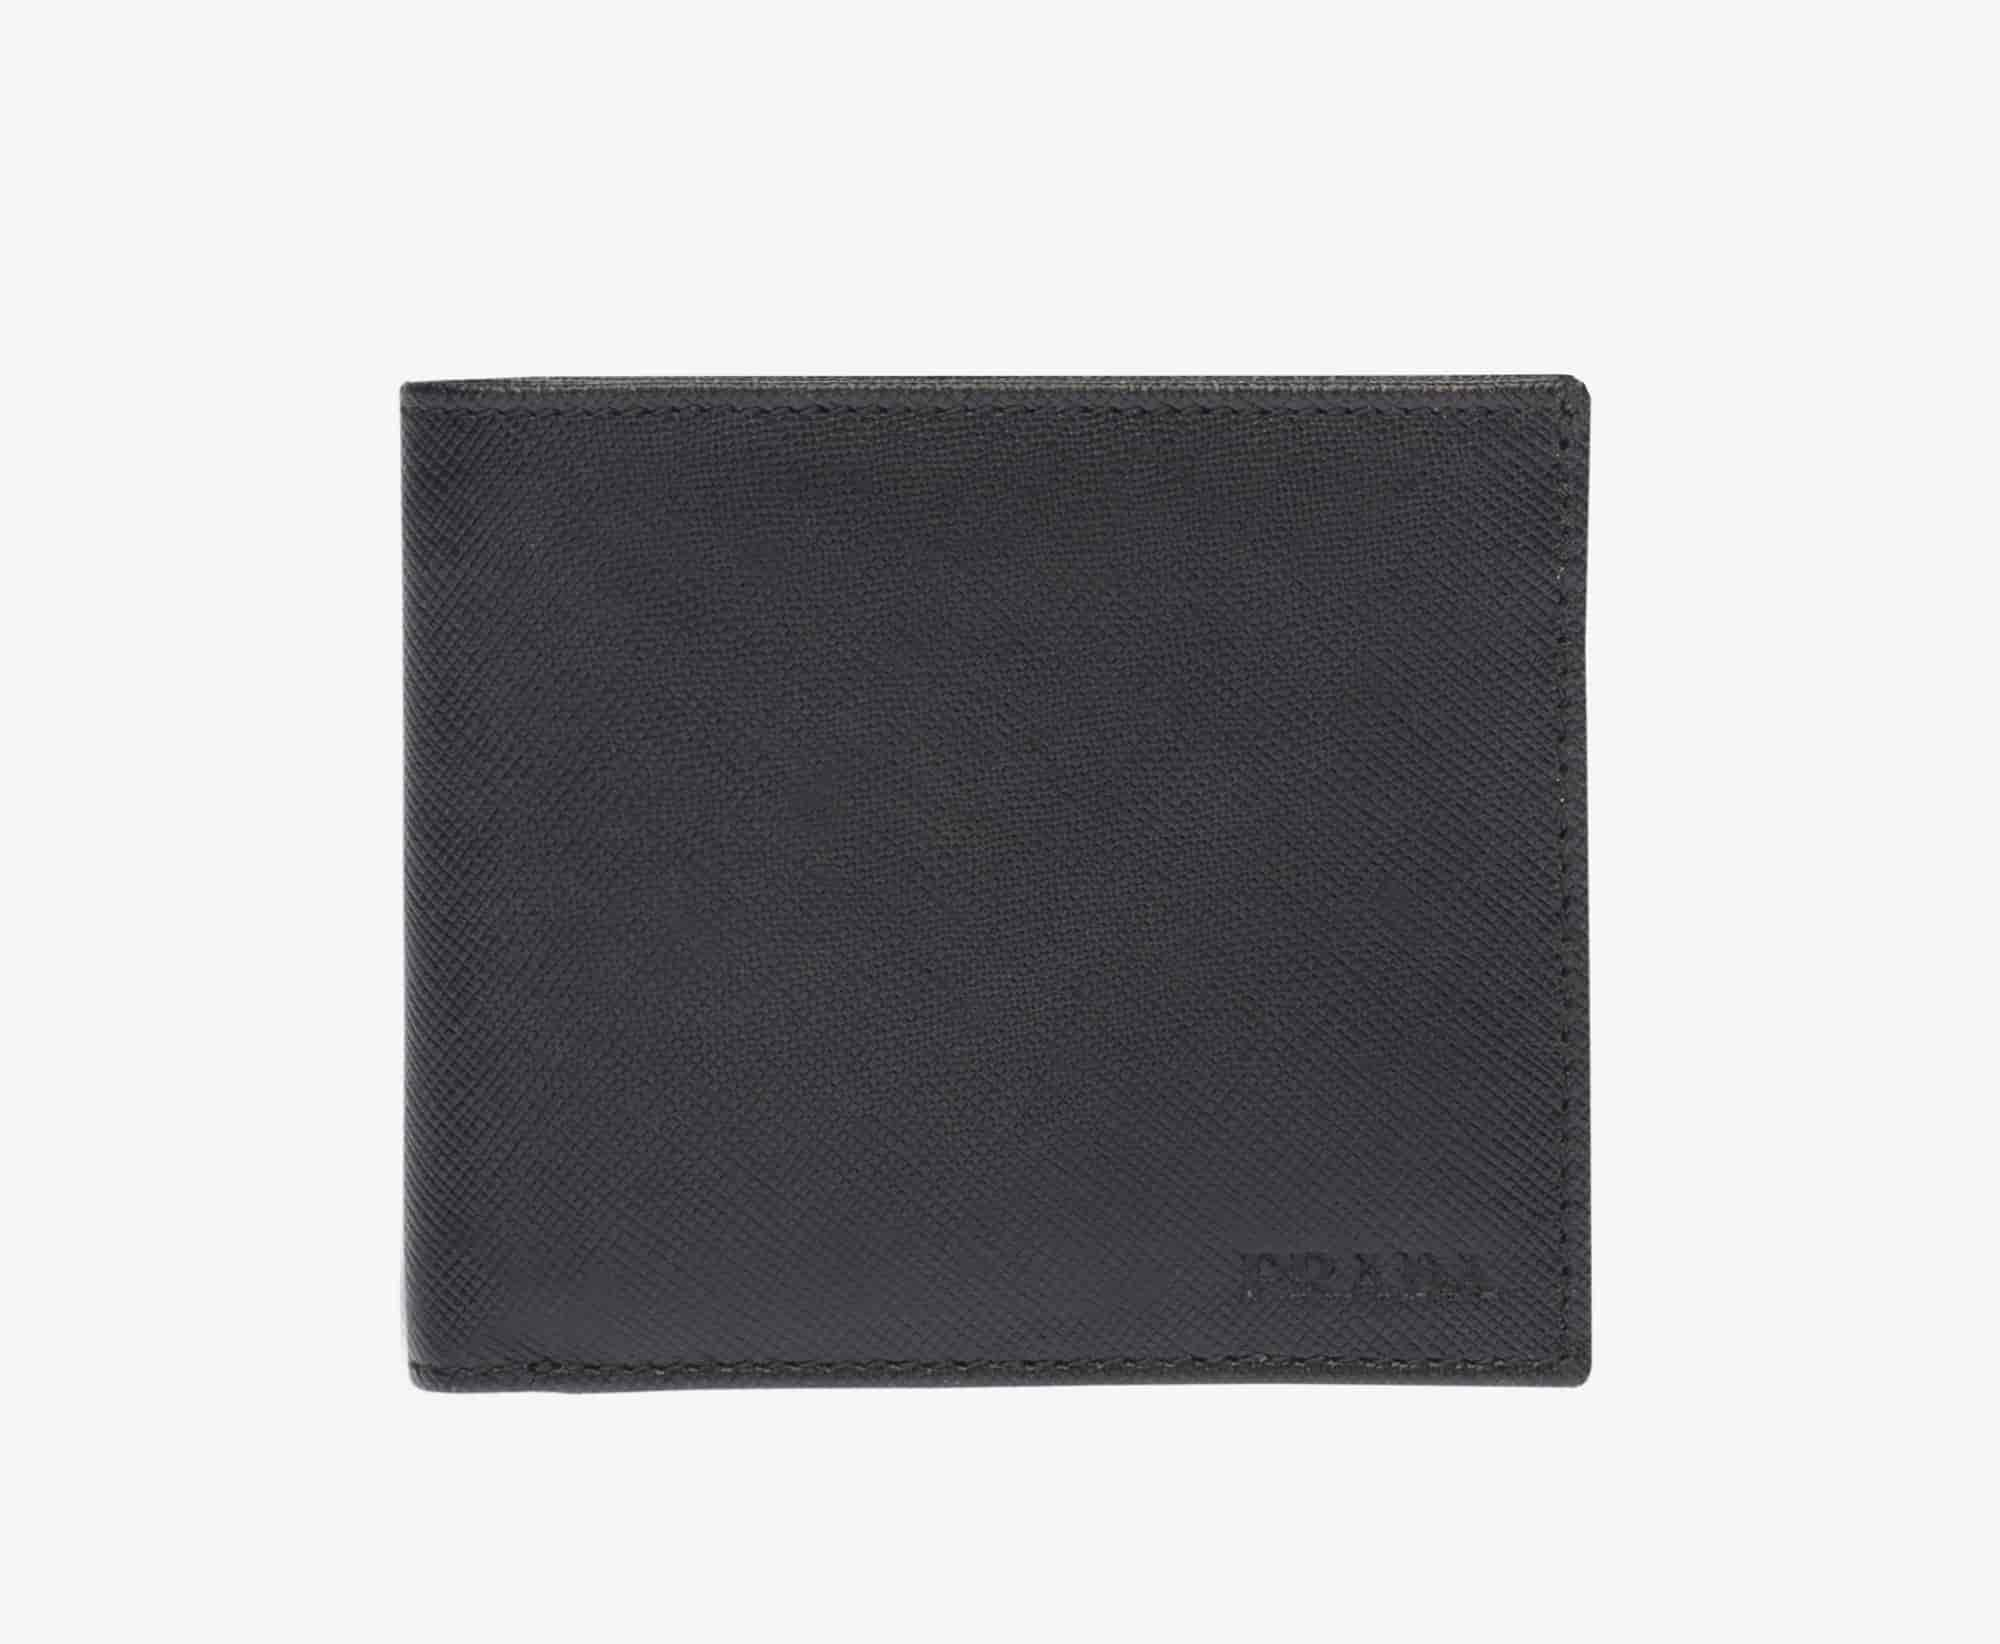 Prada Men Wallet Black [2MO912 053 F0002]